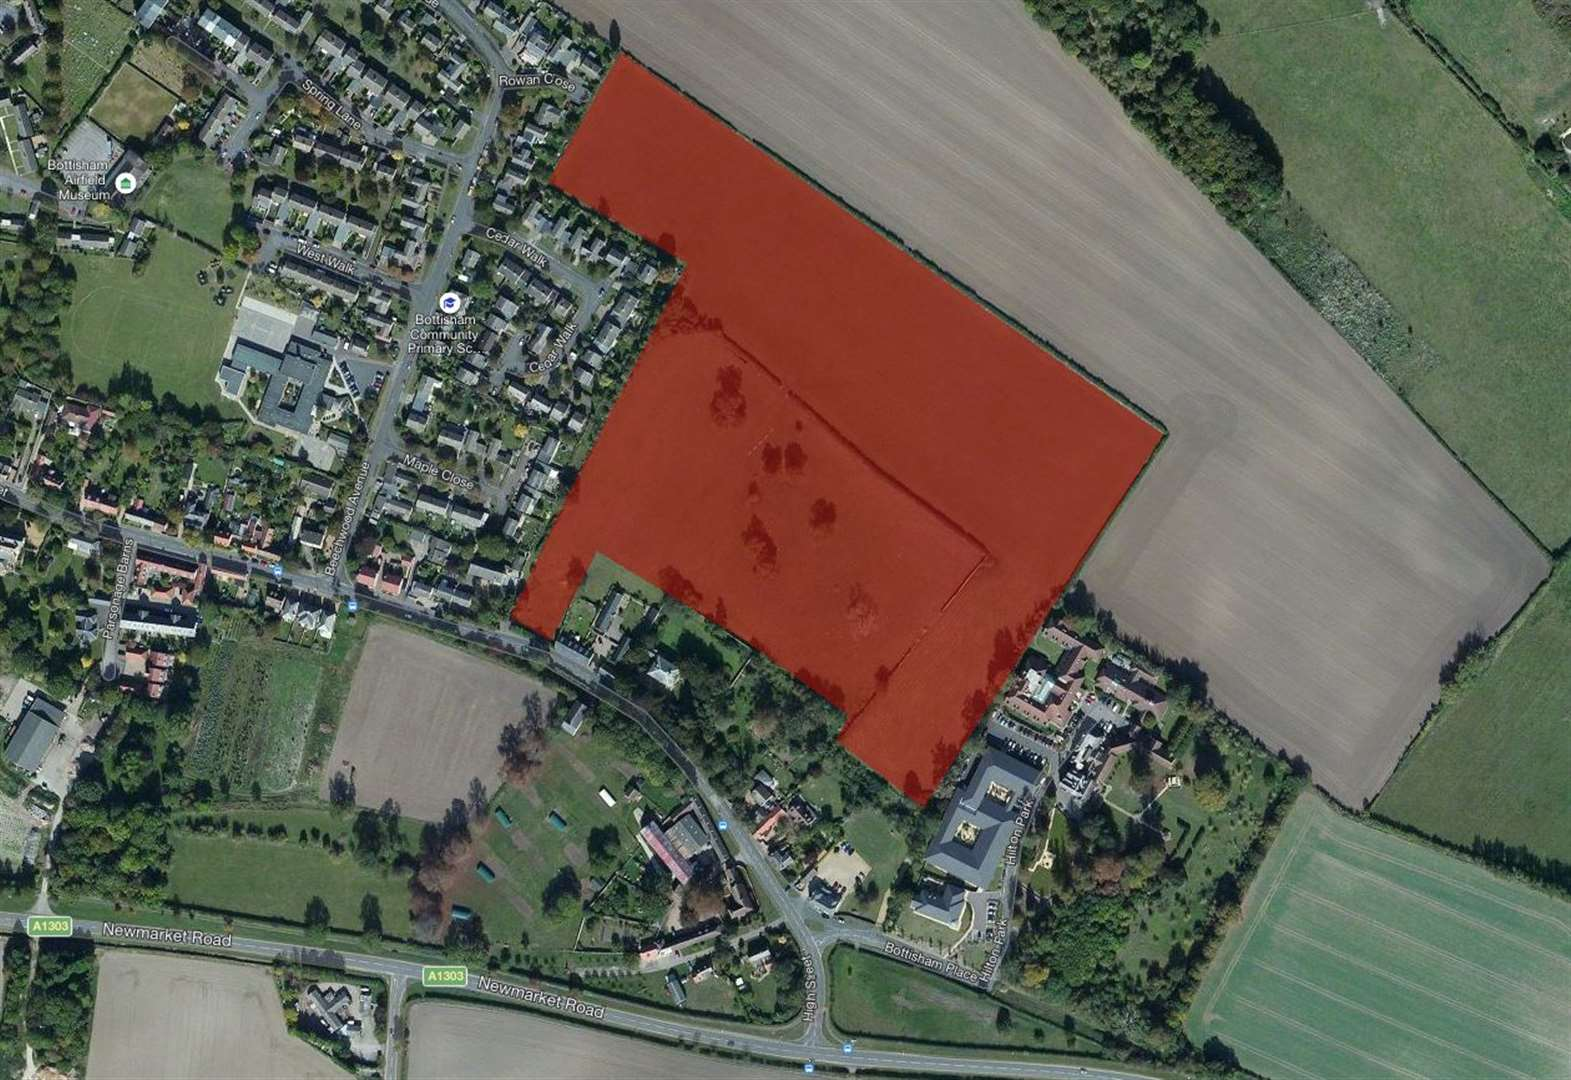 Consultation set to be held into plans to build 250-house retirement village in Bottisham